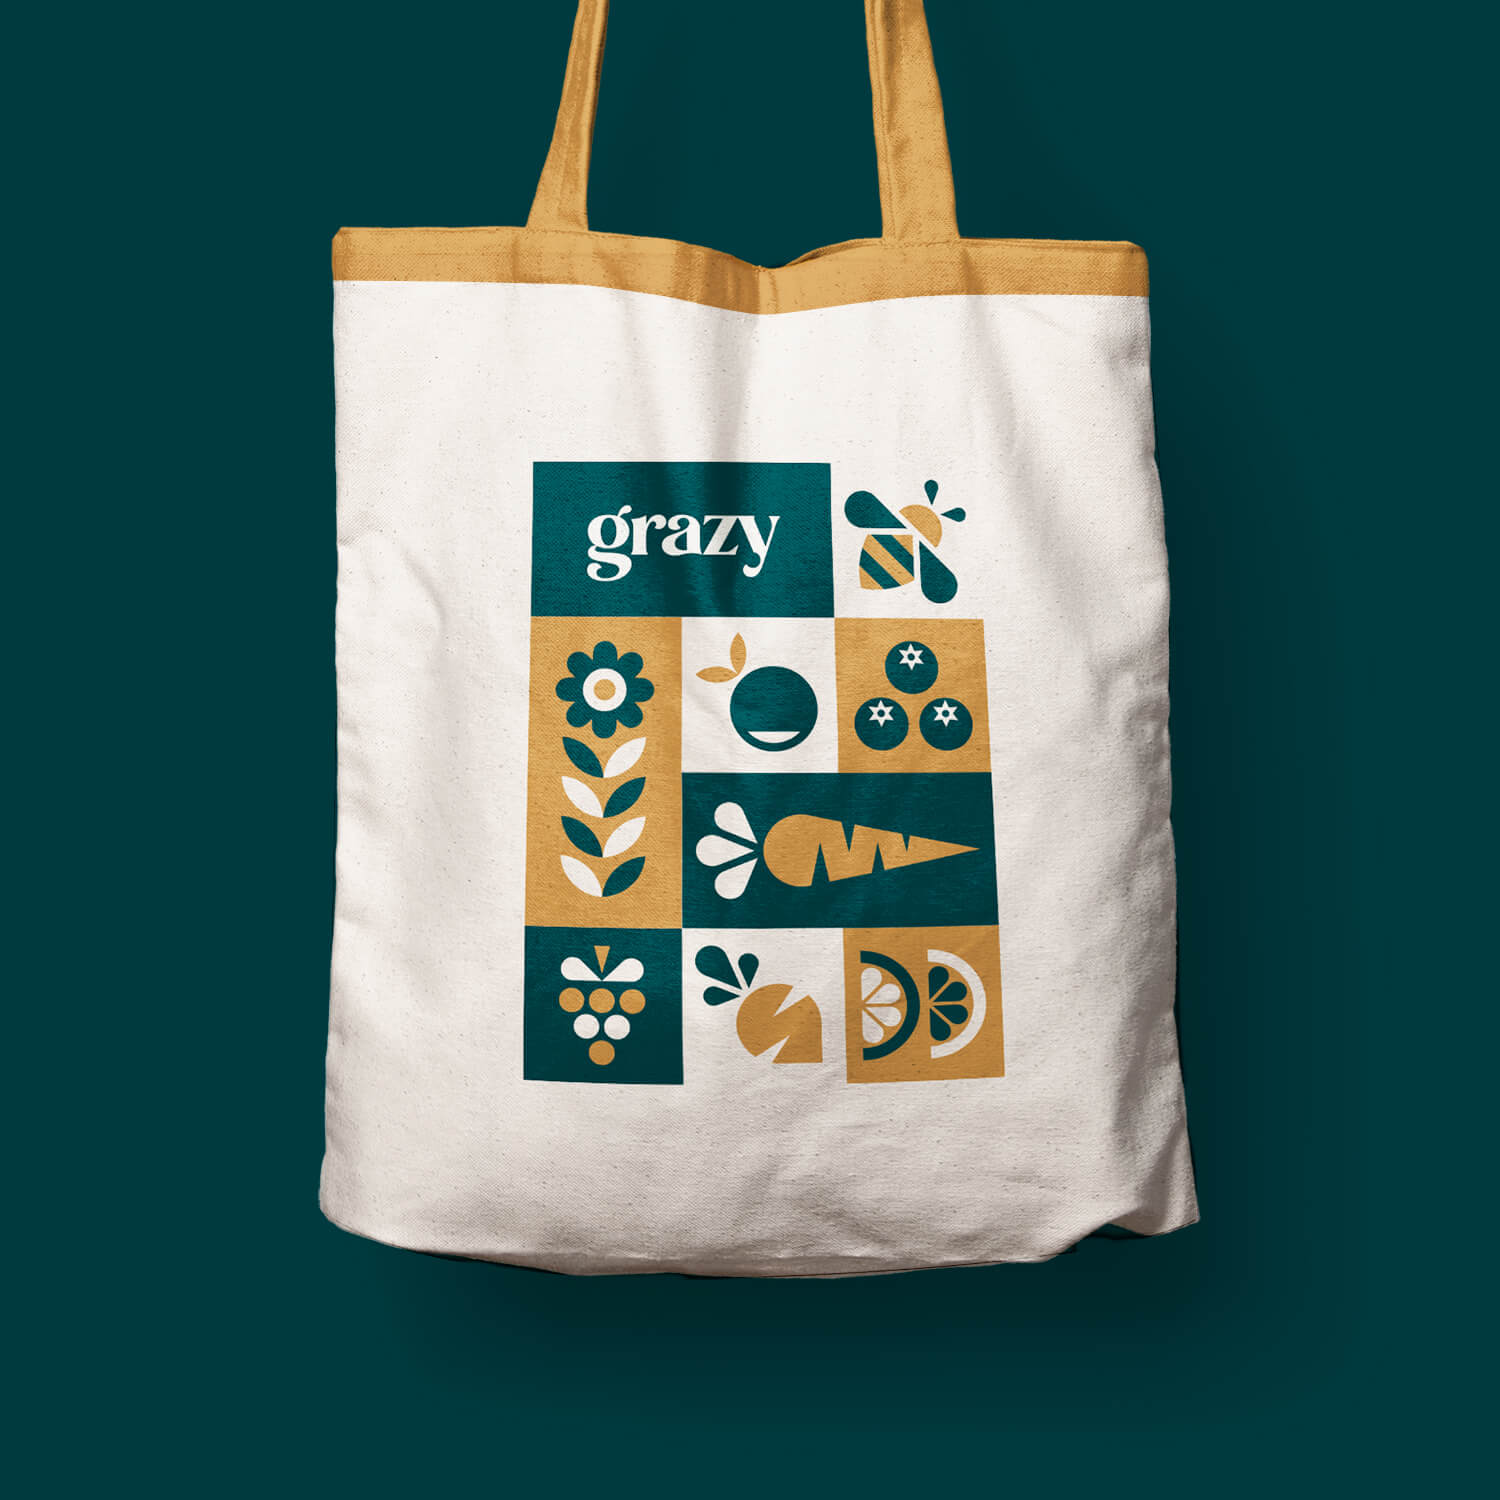 Tote bag featuring a tiled illustration and Grazy wordmark on the side